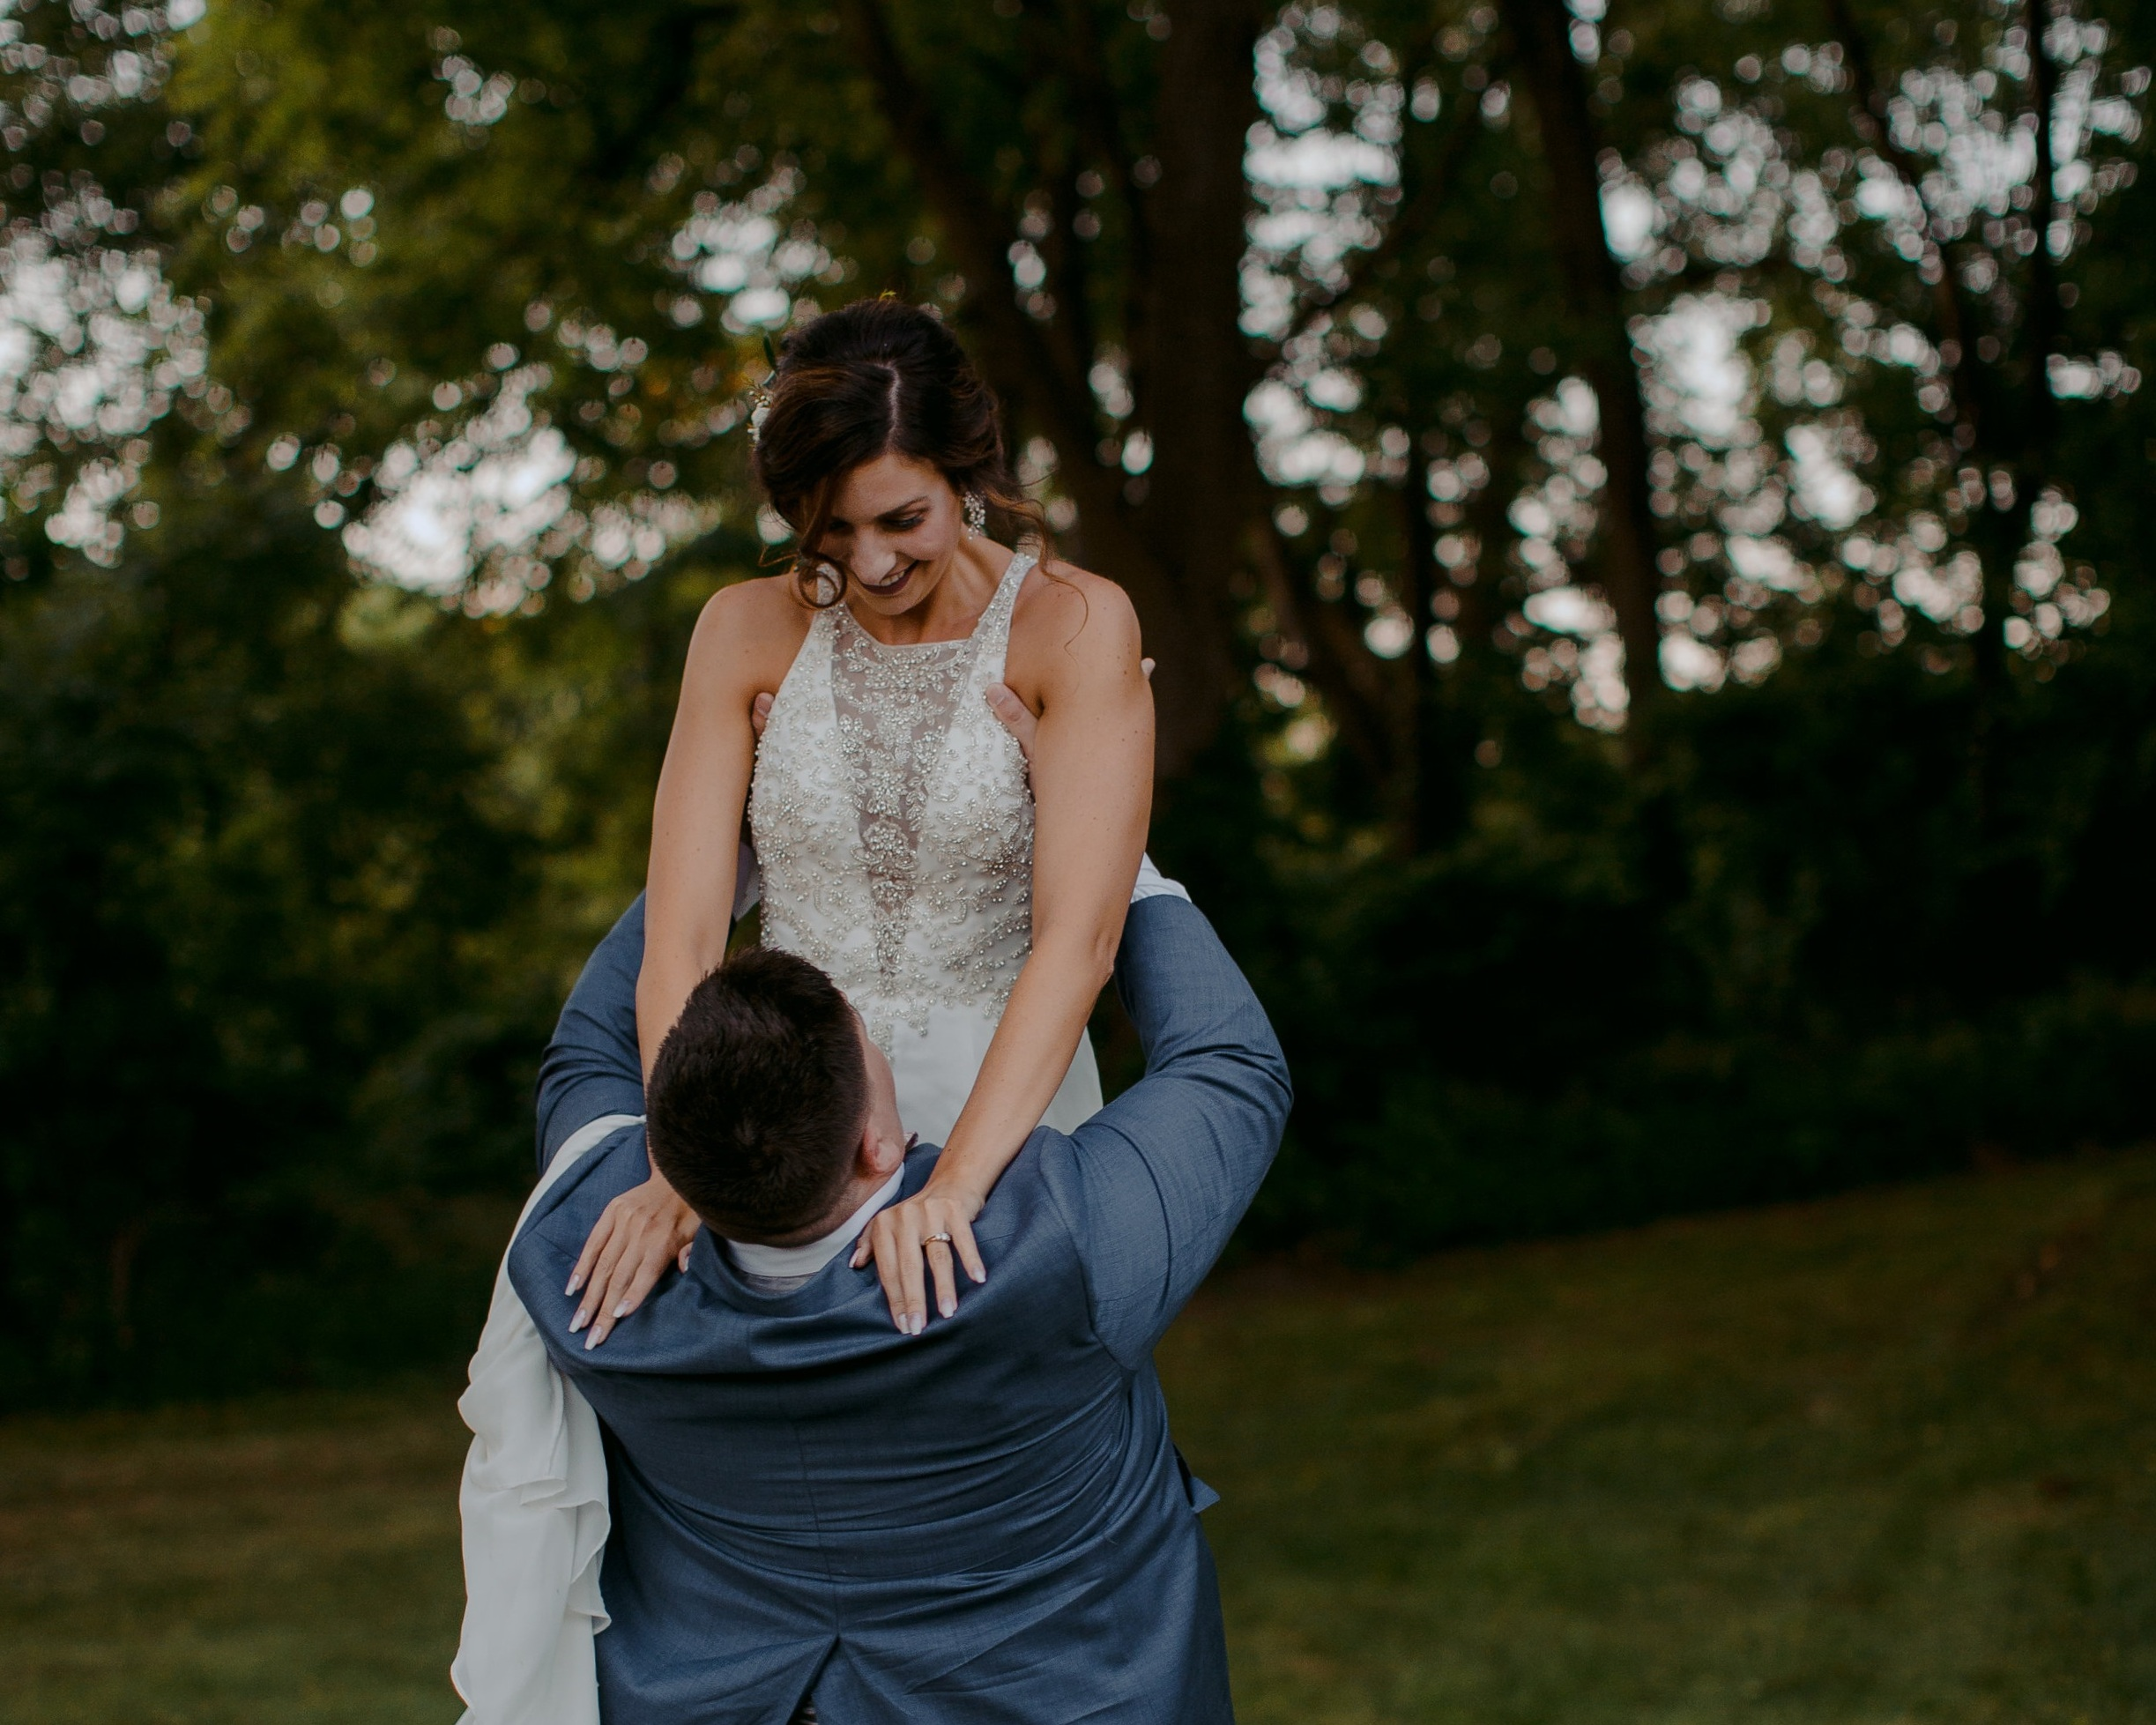 a FIRST DANCE TO REMEMBER… - Choreographed and Inspired by YOUR UNIQUE LOVE.A personalized dance created for you and your partner to highlight your individual skills and your love story.Starting at $200